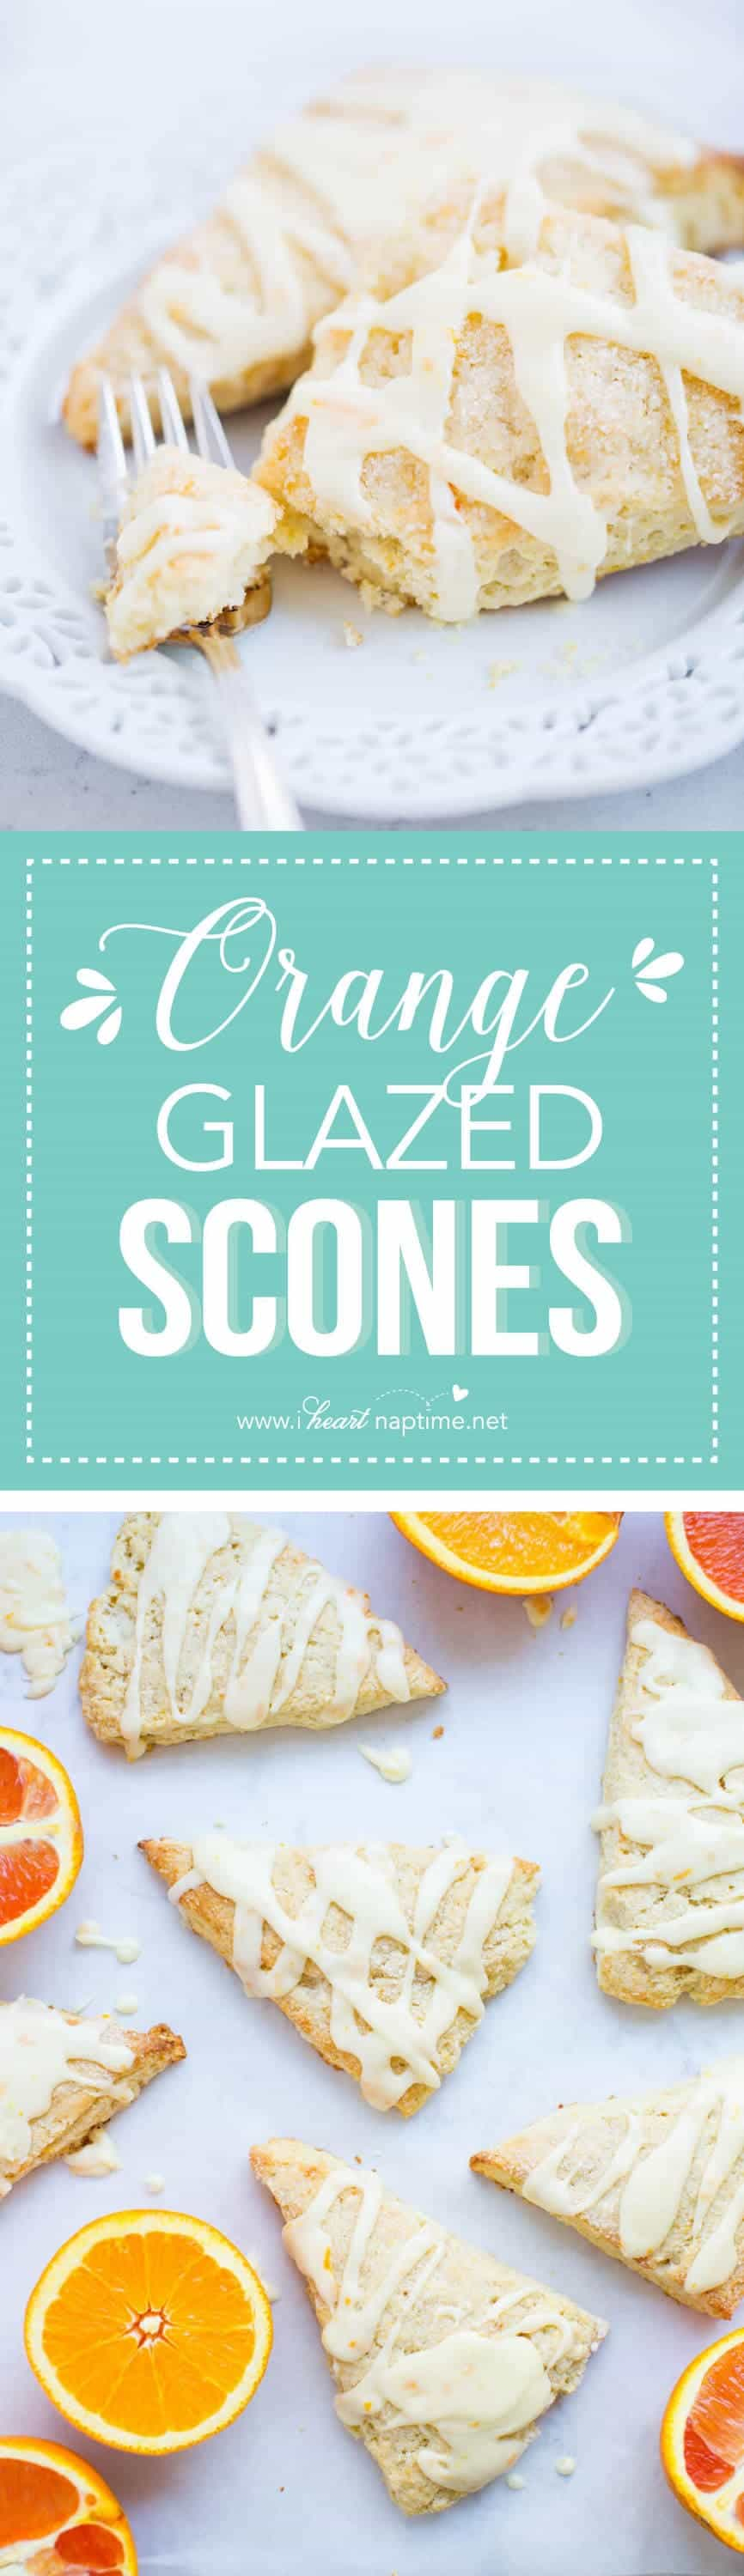 Glazed Orange Scones - I Heart Nap Time